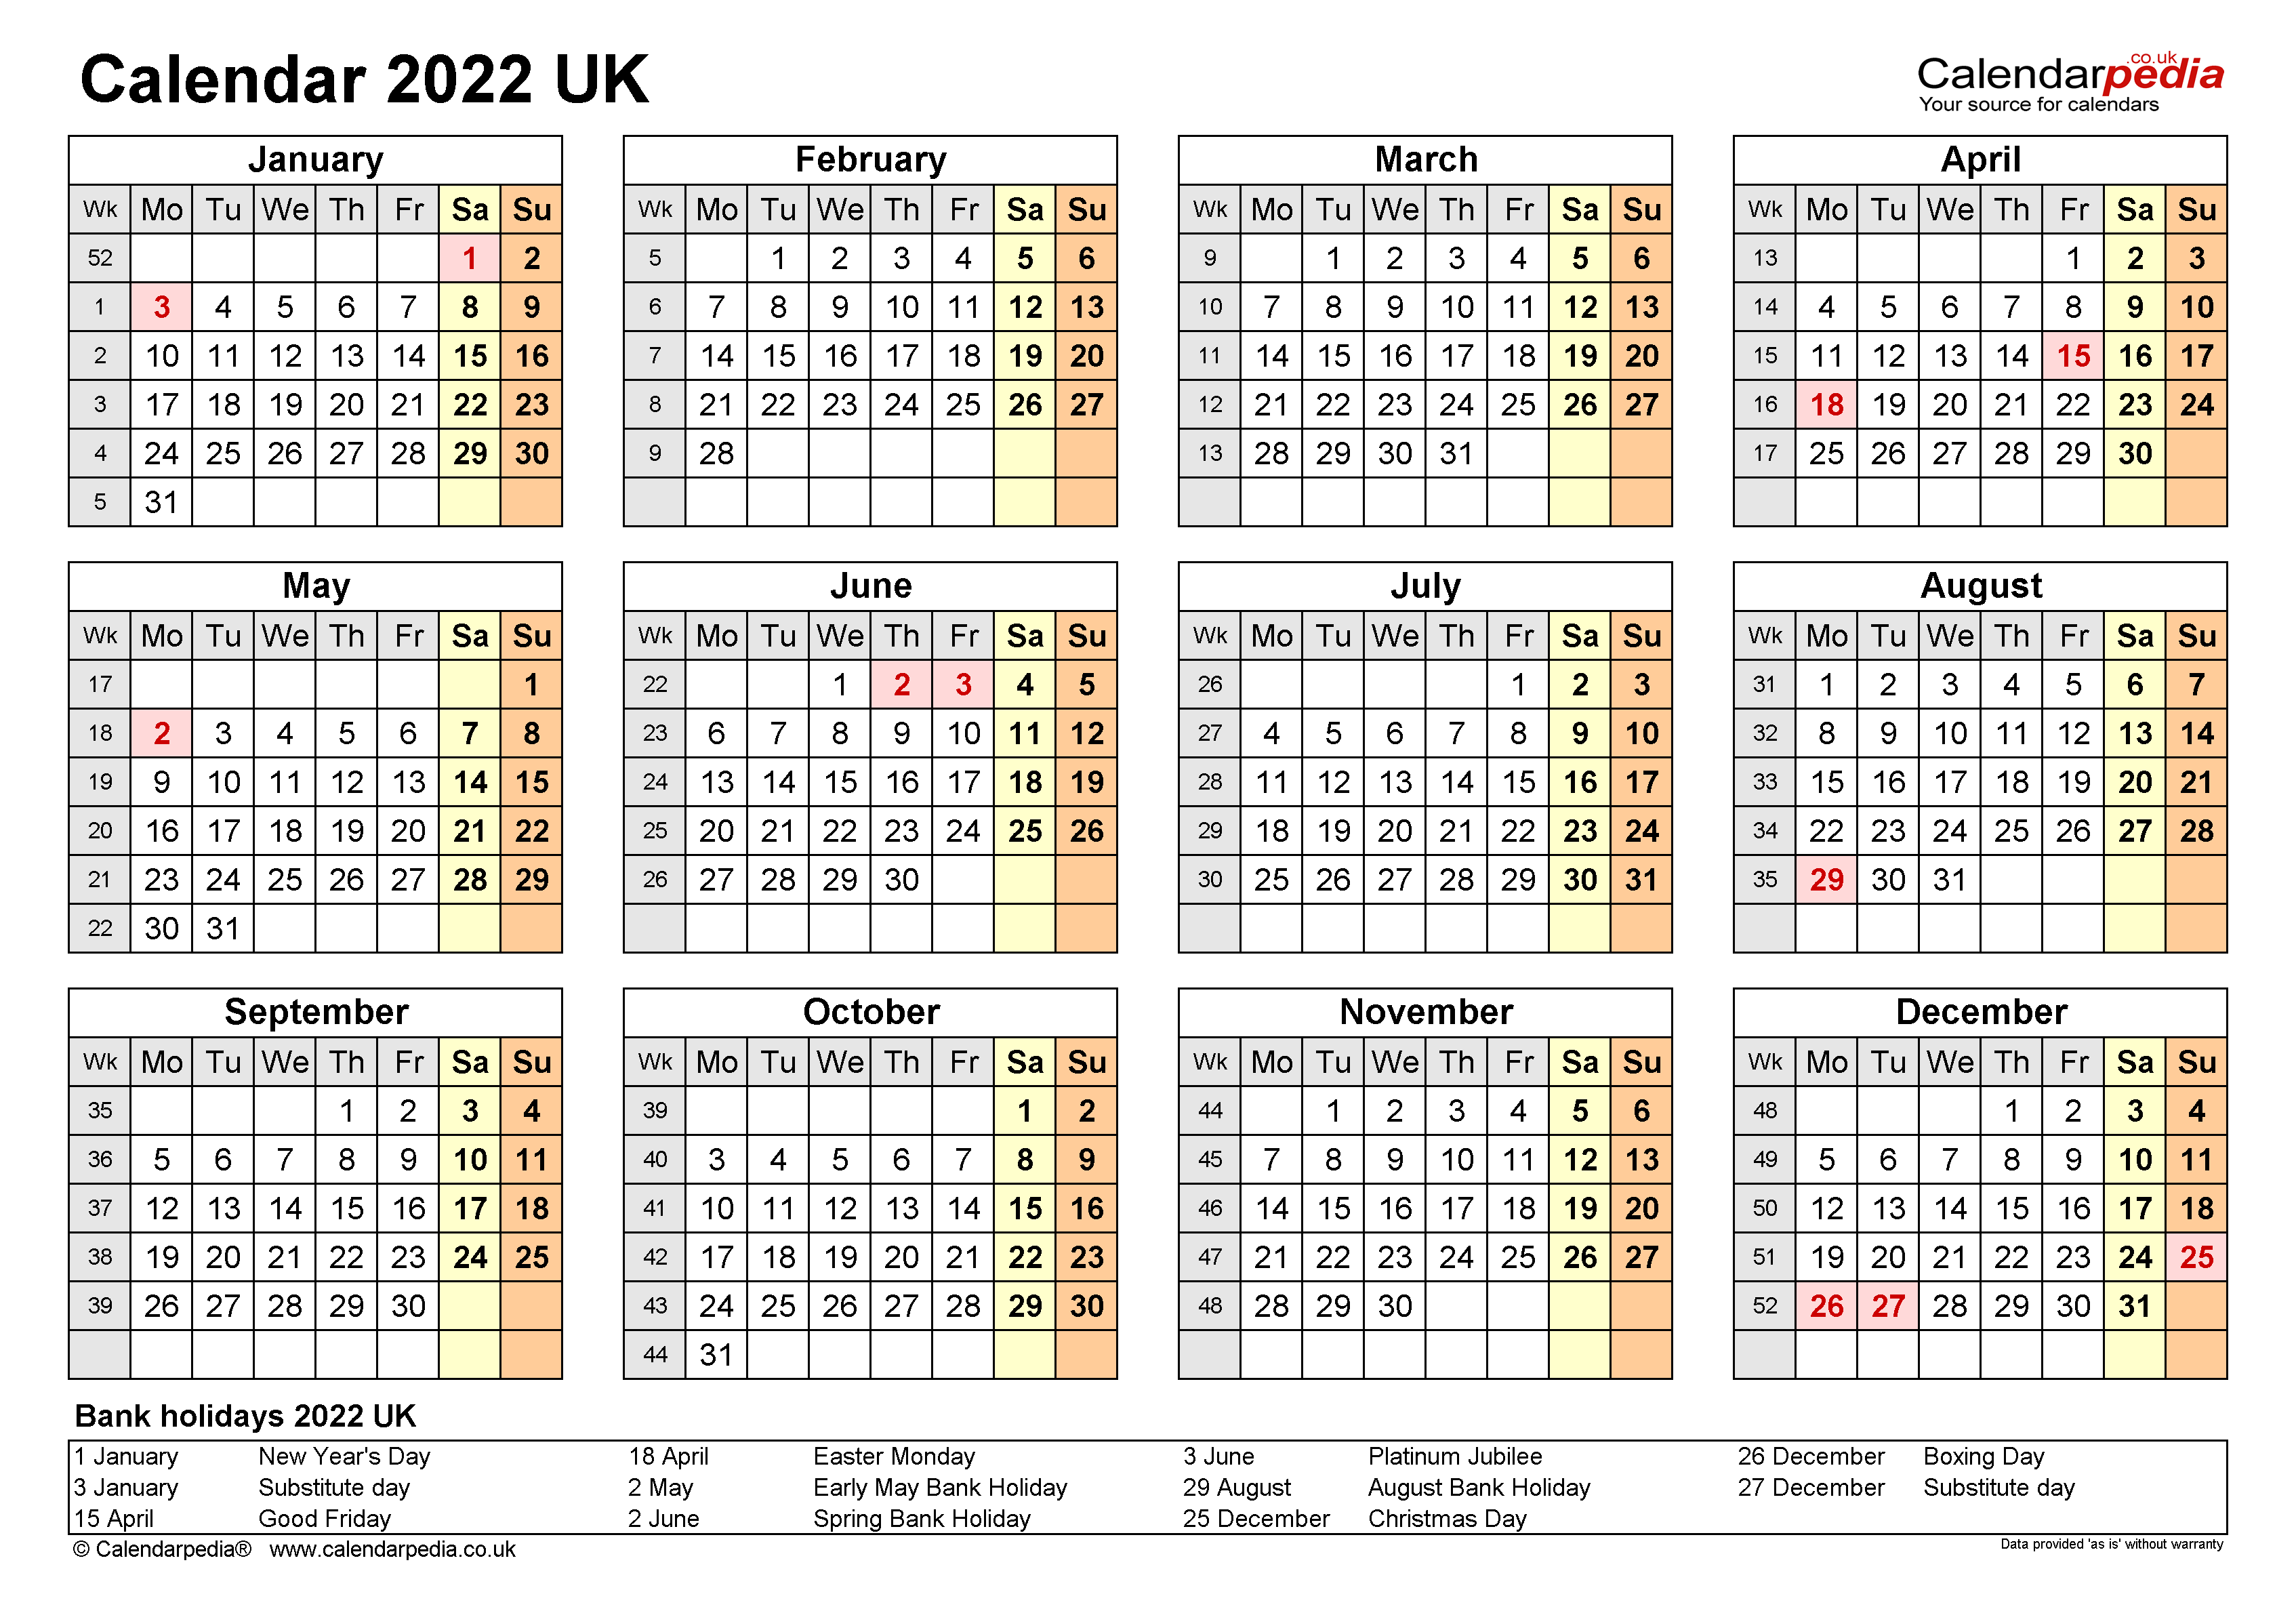 Calendar 2022 (UK) - free printable Microsoft Word templates